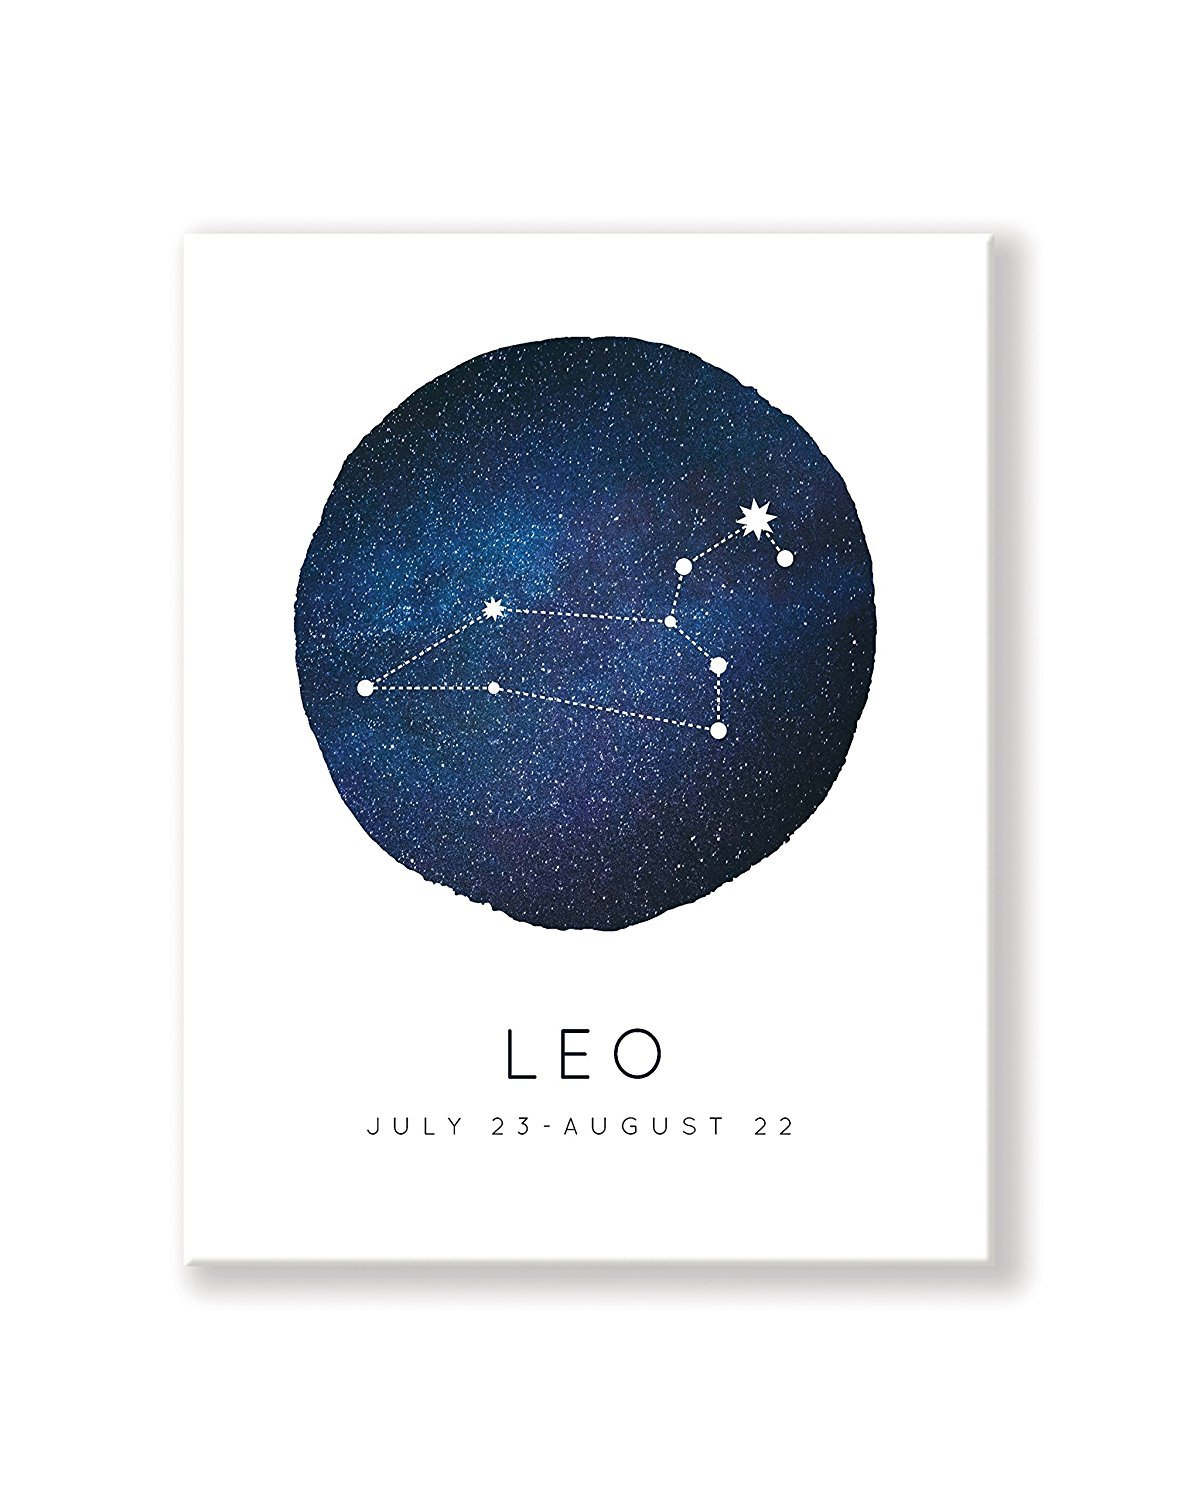 """Kindred Sol Leo Zodiac Constellation Art 14"""" x 11"""" - Minimalist & Dreamy Astrology Print - Perfect Horoscope Print for Nursery Decor, Bedrooms, Playrooms, Classrooms, and Gifts"""